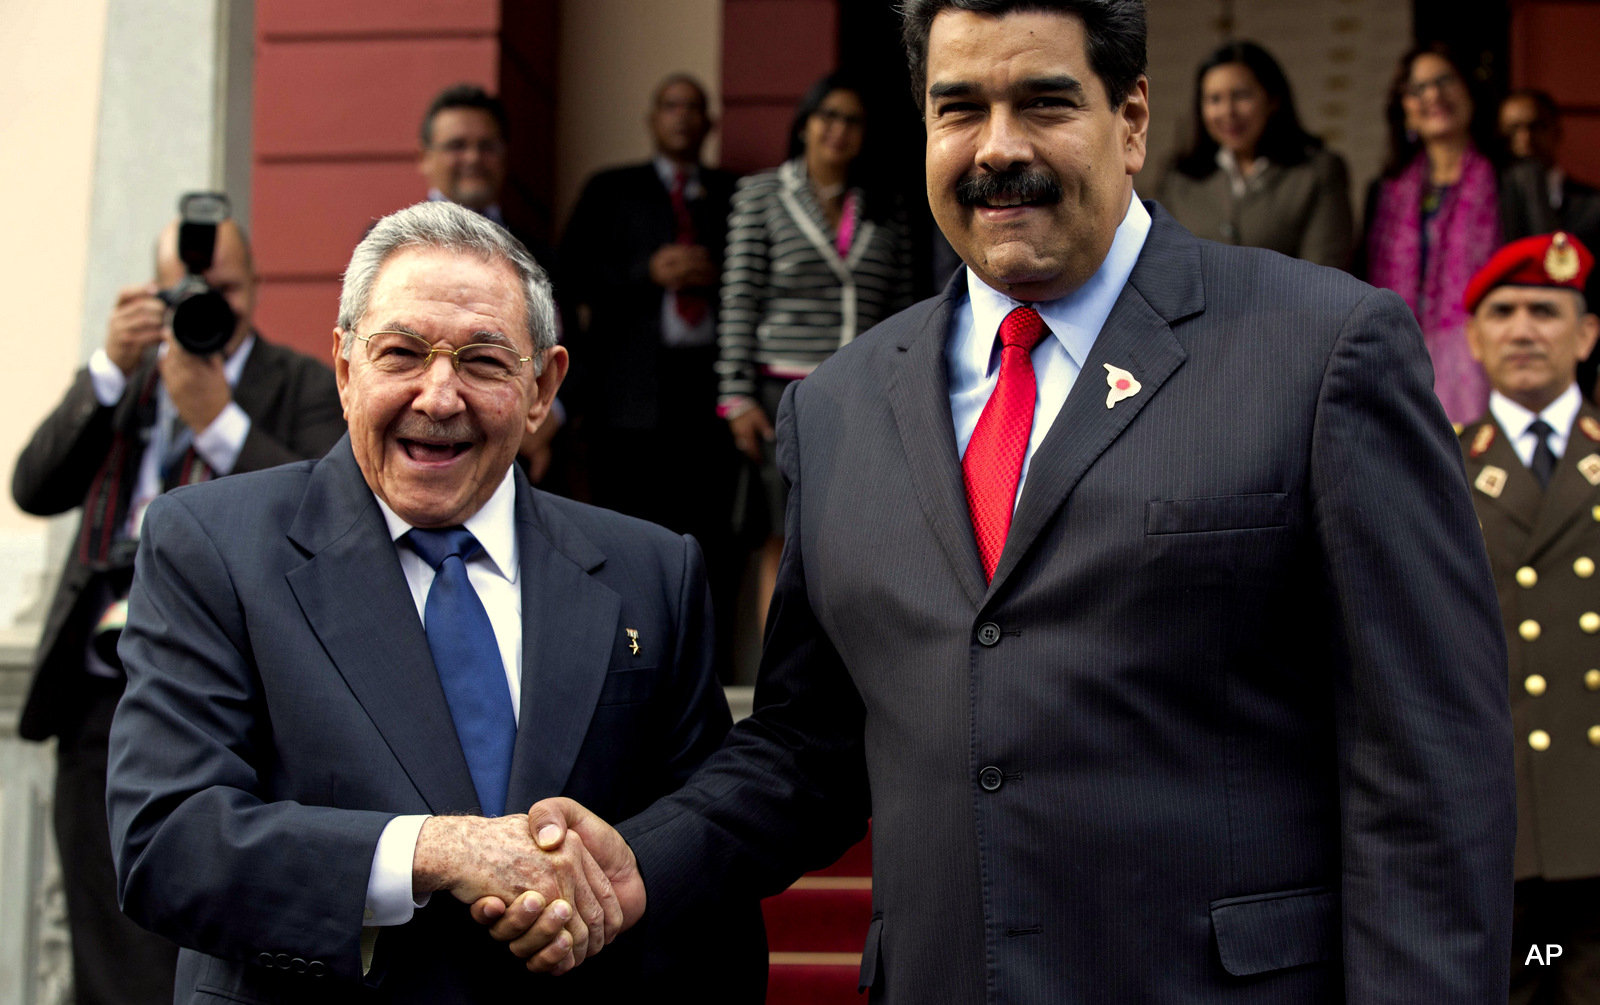 Cuba's President Raul Castro, left, shakes hands with Venezuela's President Nicolas Maduro in front of the press after arriving to Miraflores presidential palace for an emergency ALBA meeting in Caracas, Venezuela, Tuesday, March 17, 2015.